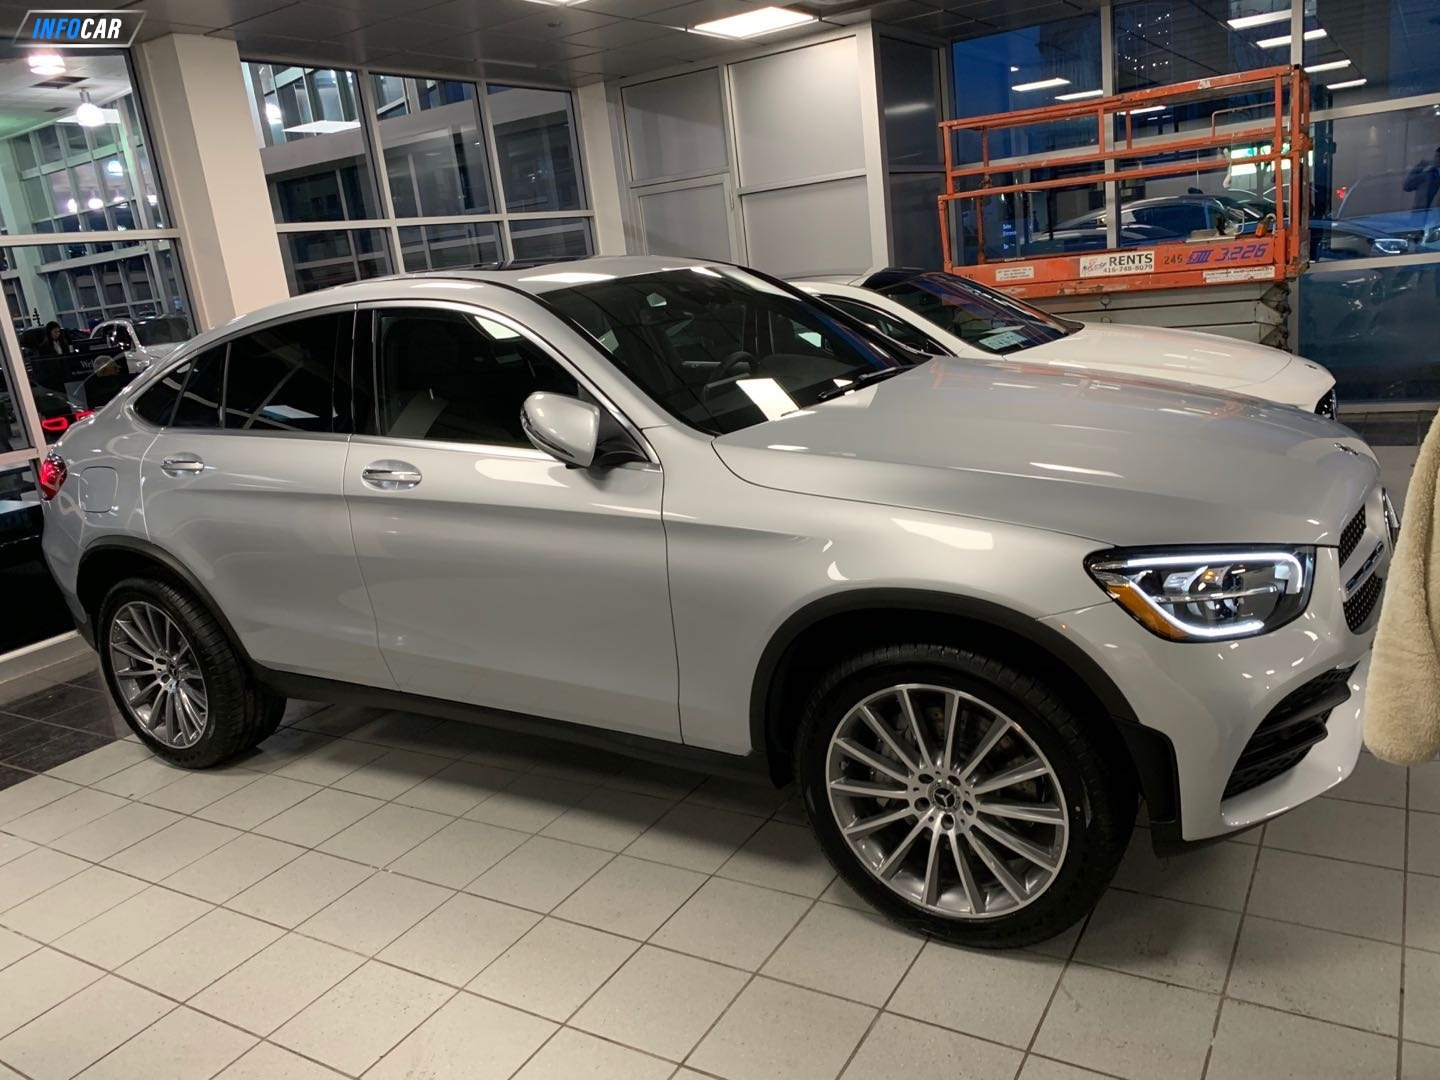 2020 Mercedes-Benz GLC-Class 300 coupe - INFOCAR - Toronto's Most Comprehensive New and Used Auto Trading Platform